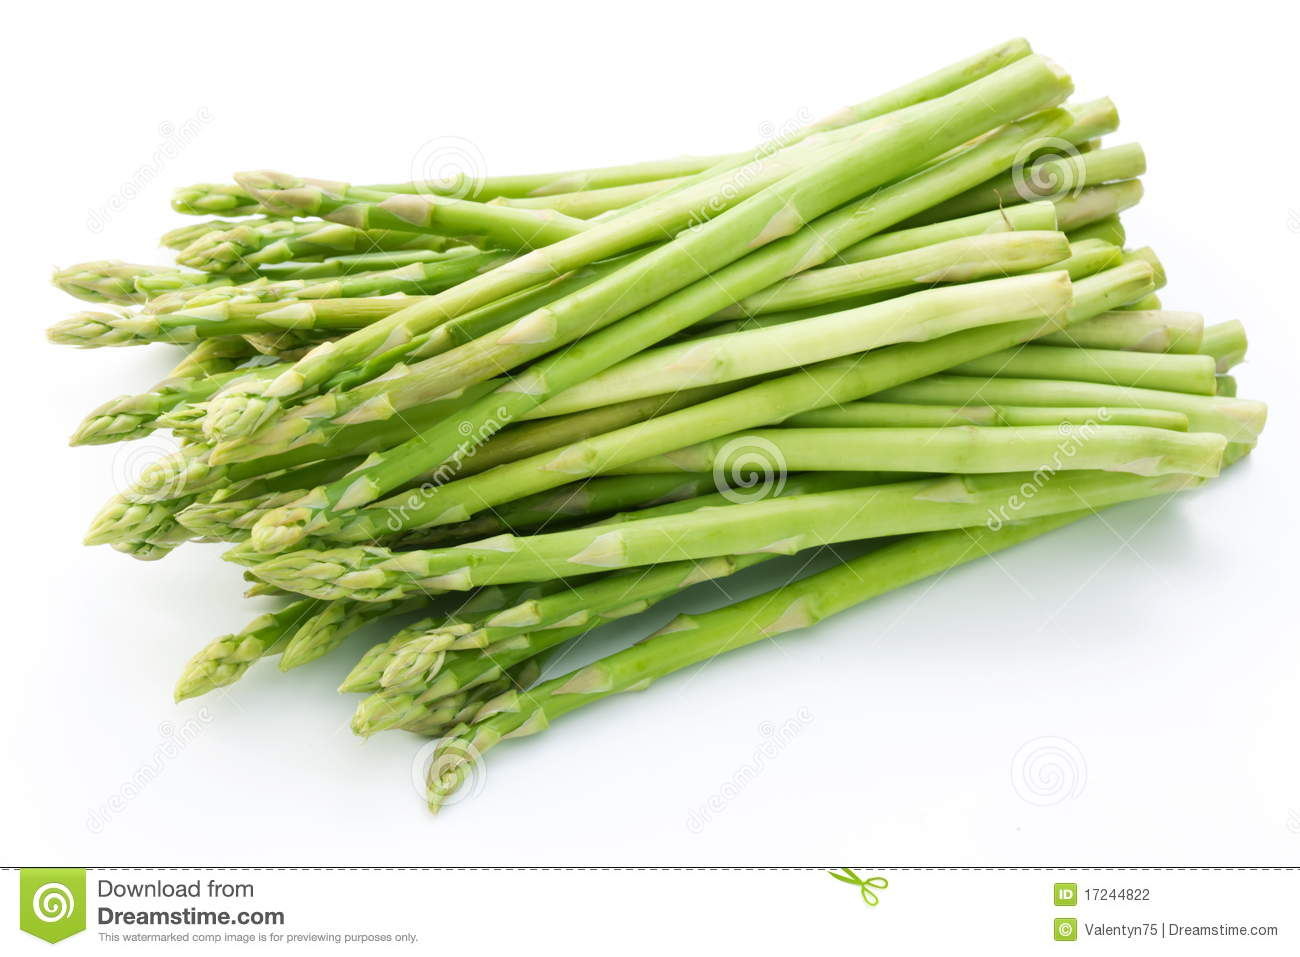 Asparagus Clipart Sheaf of asparagus on a white